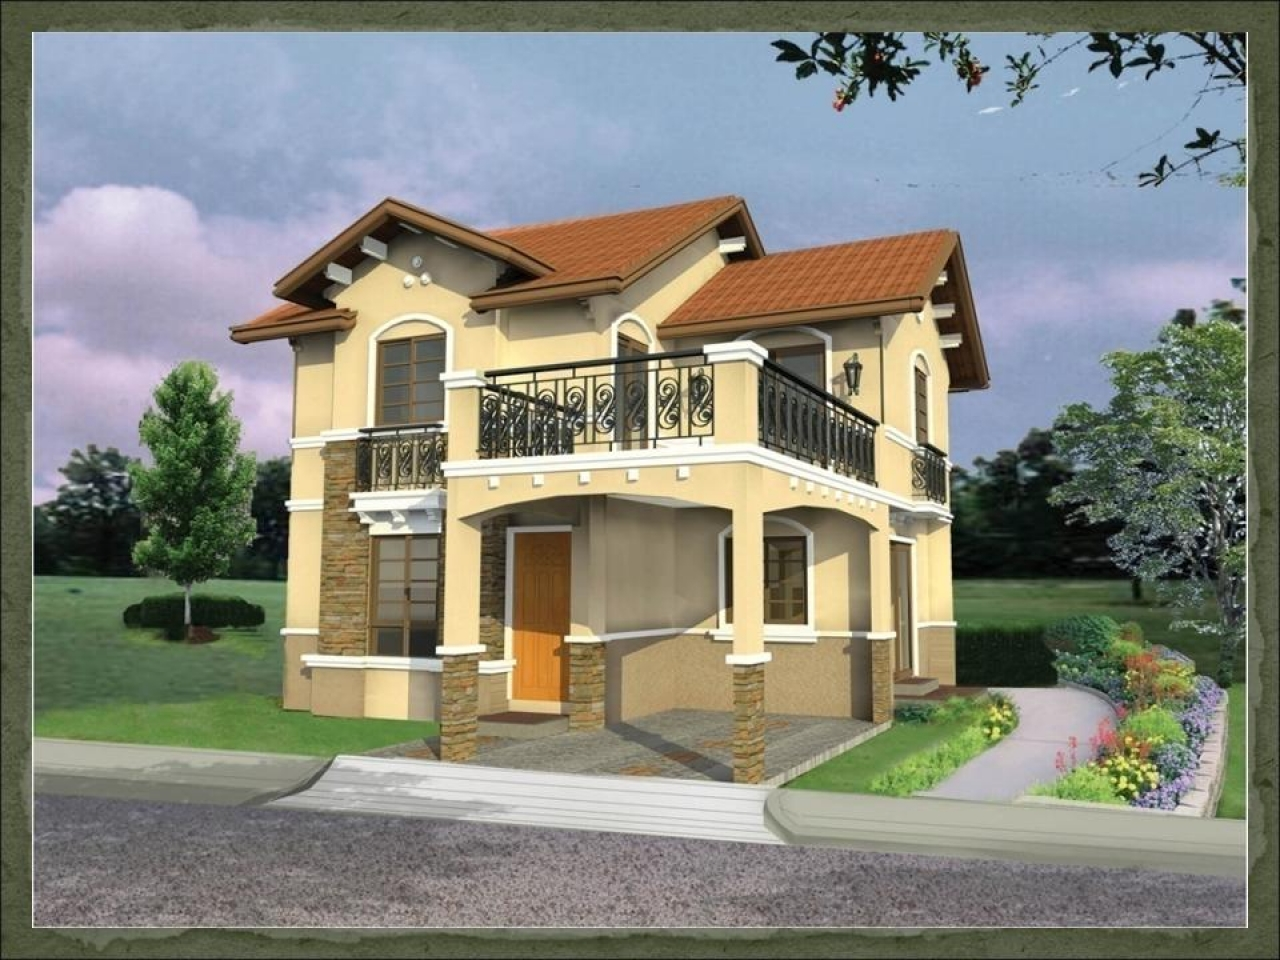 modern house plans designs philippines affordable modern house plans lrg 8329698e01066bb4 - 41+ Two Story Modern Small House Design Pictures